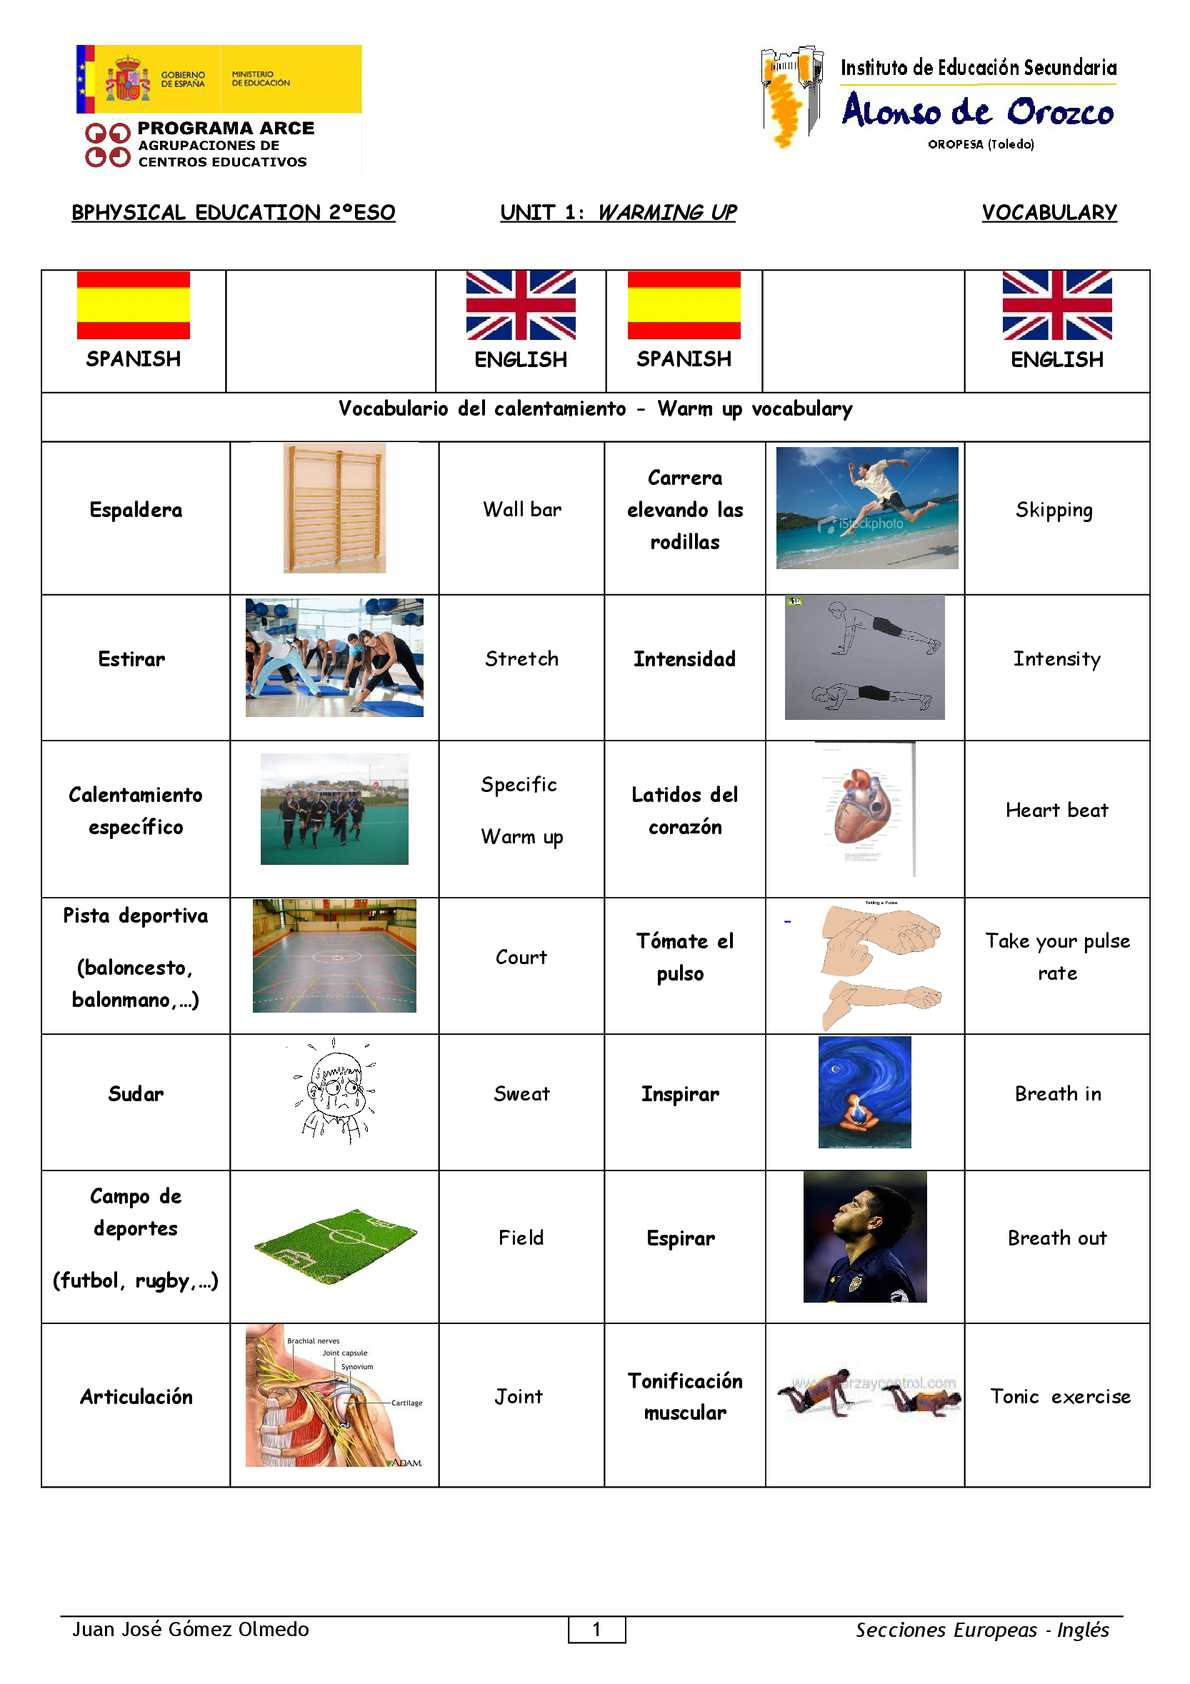 Physical Education-2º ESO-Warming up-VOCABULARY